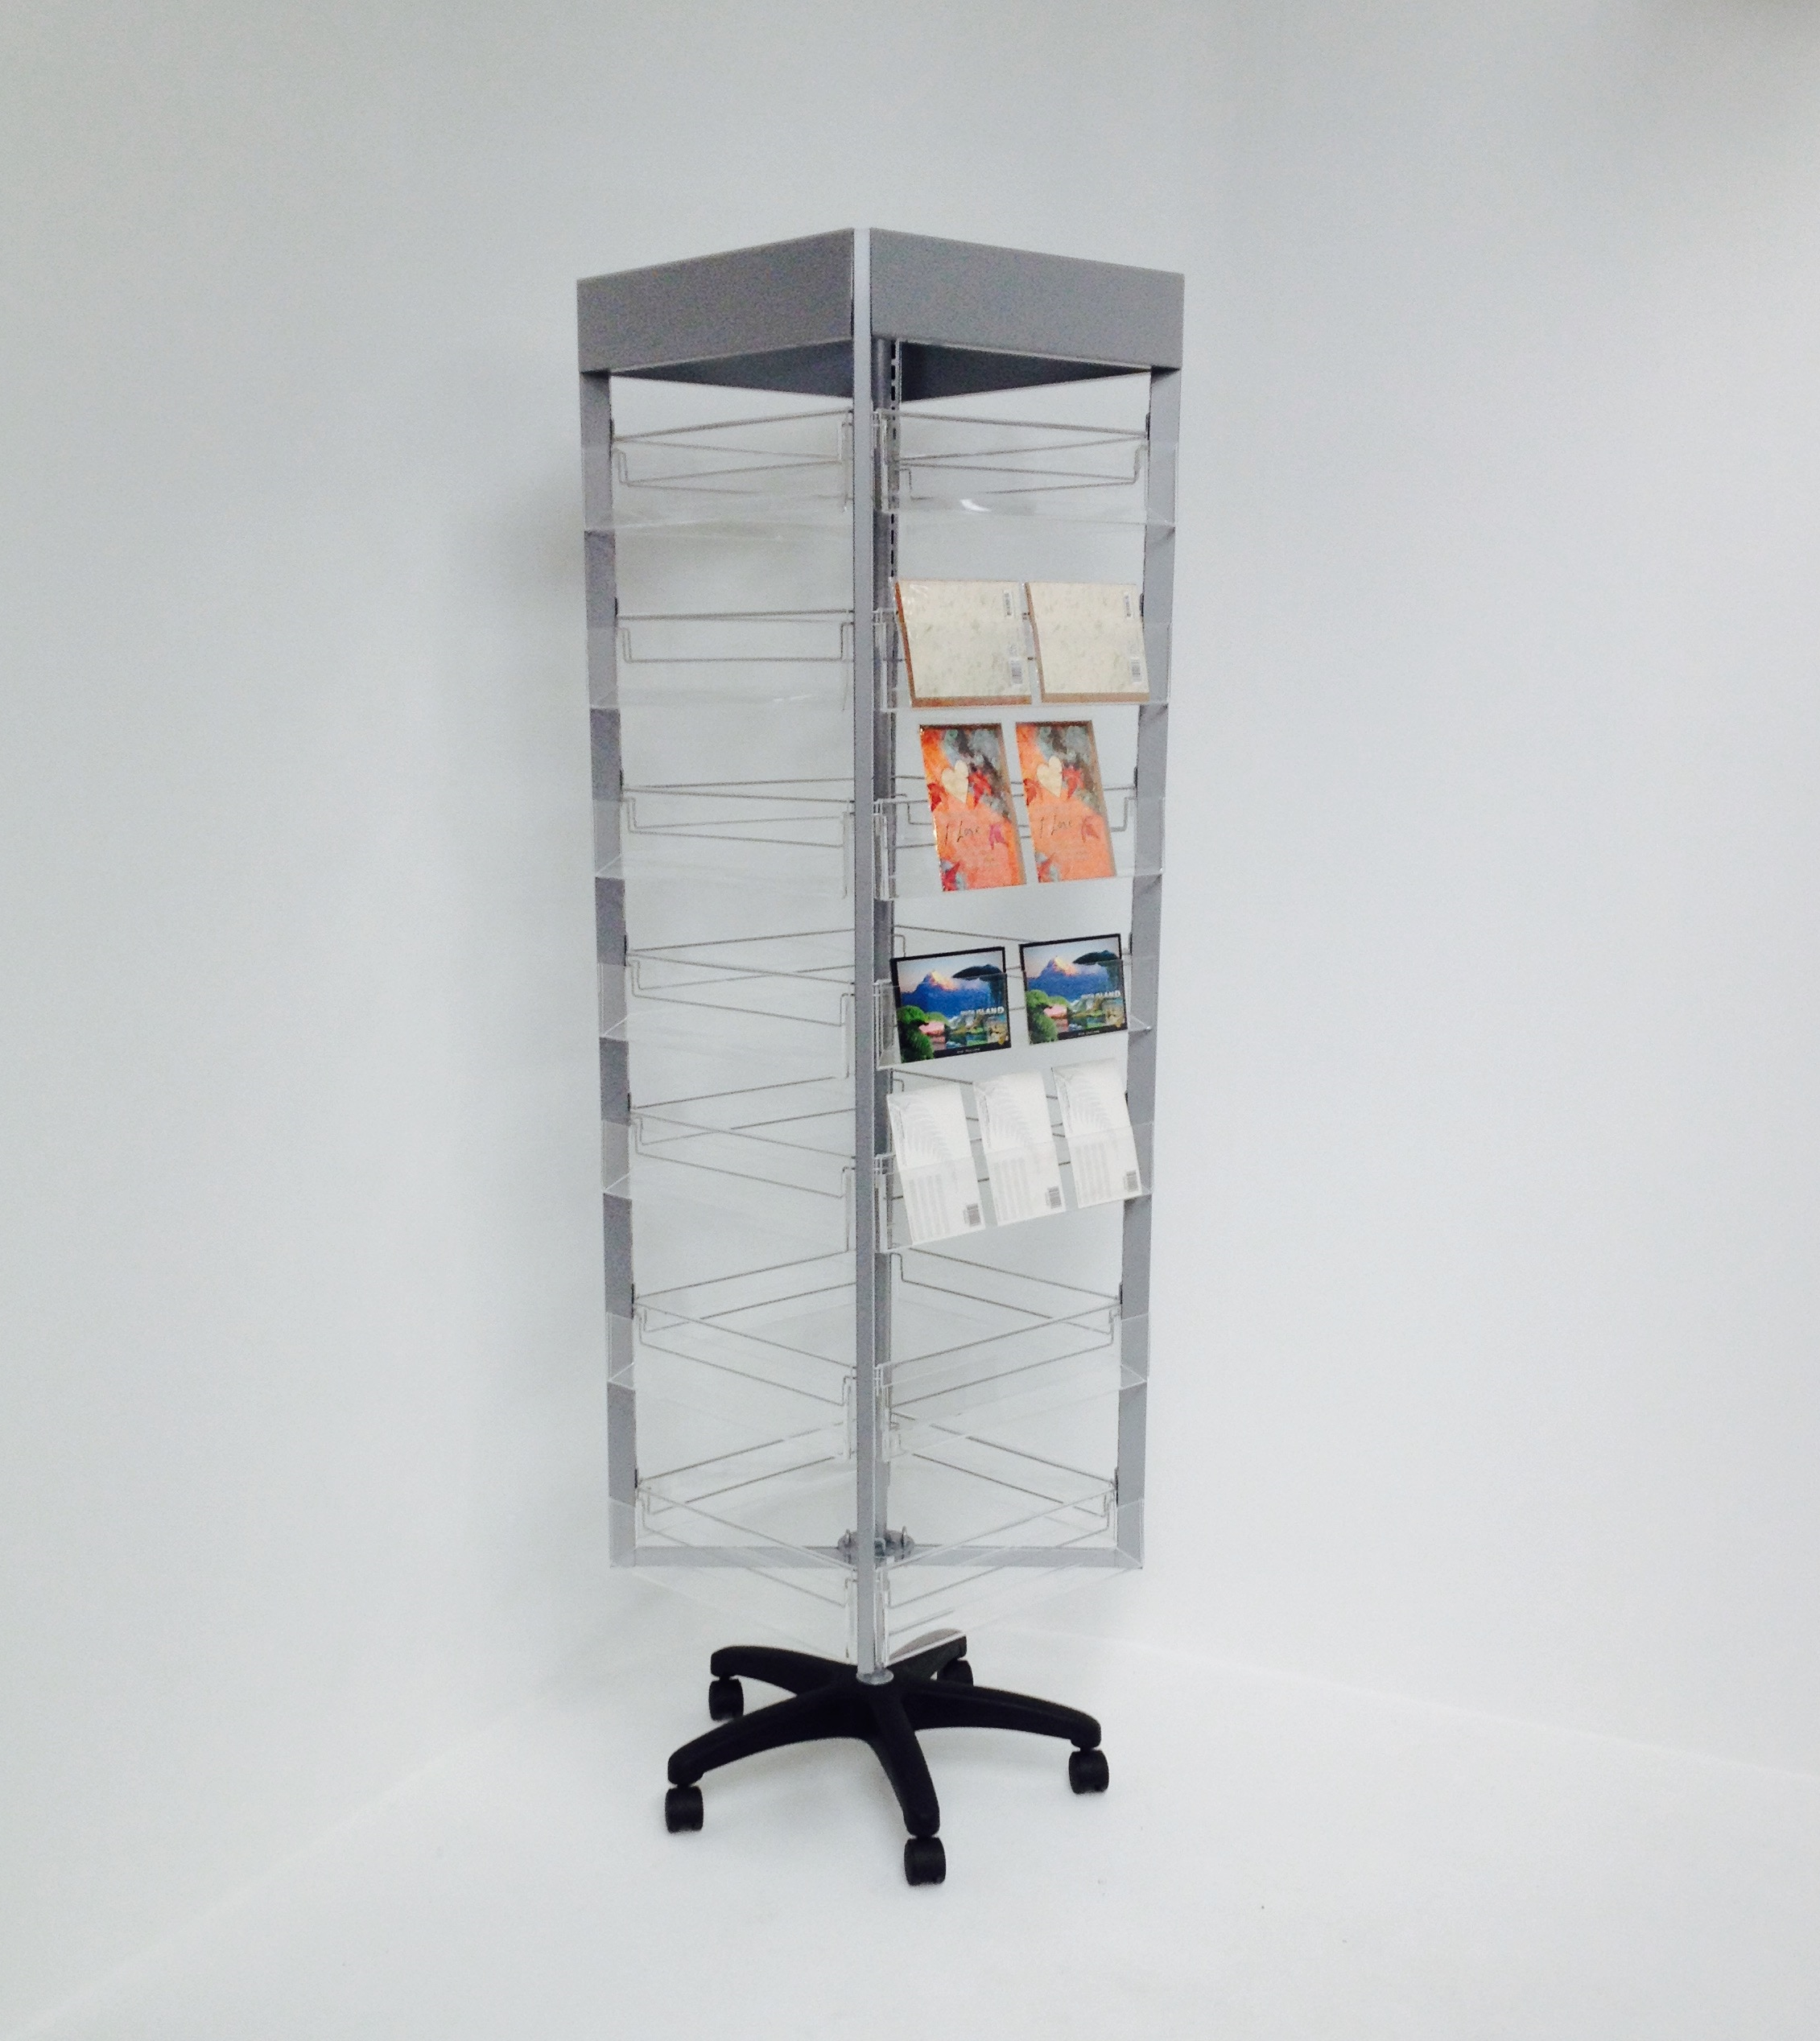 Exhibition Stand Nz : Rotating display stand with acrylic pockets wire